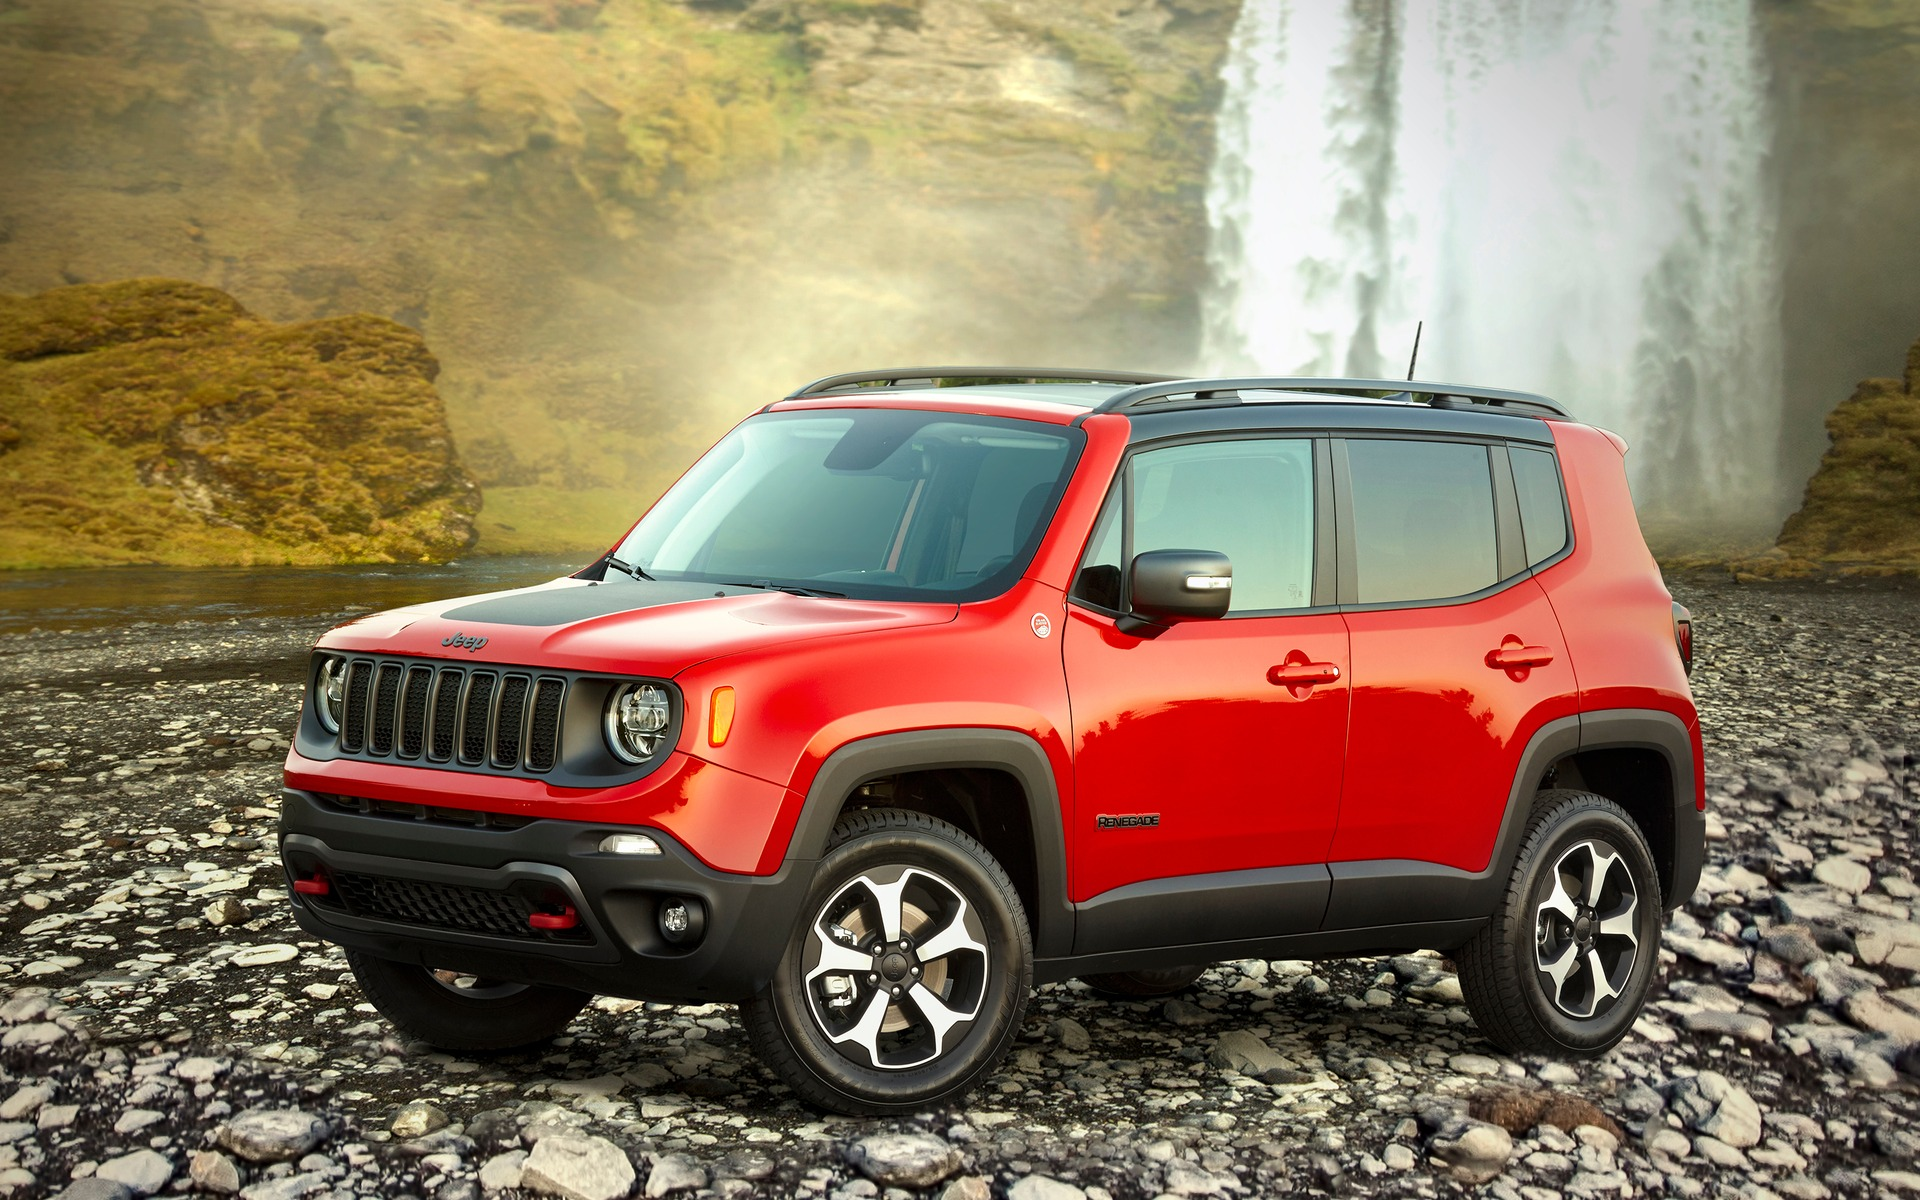 jeep renegade 2019 nouveau moteur nouveau style guide auto. Black Bedroom Furniture Sets. Home Design Ideas